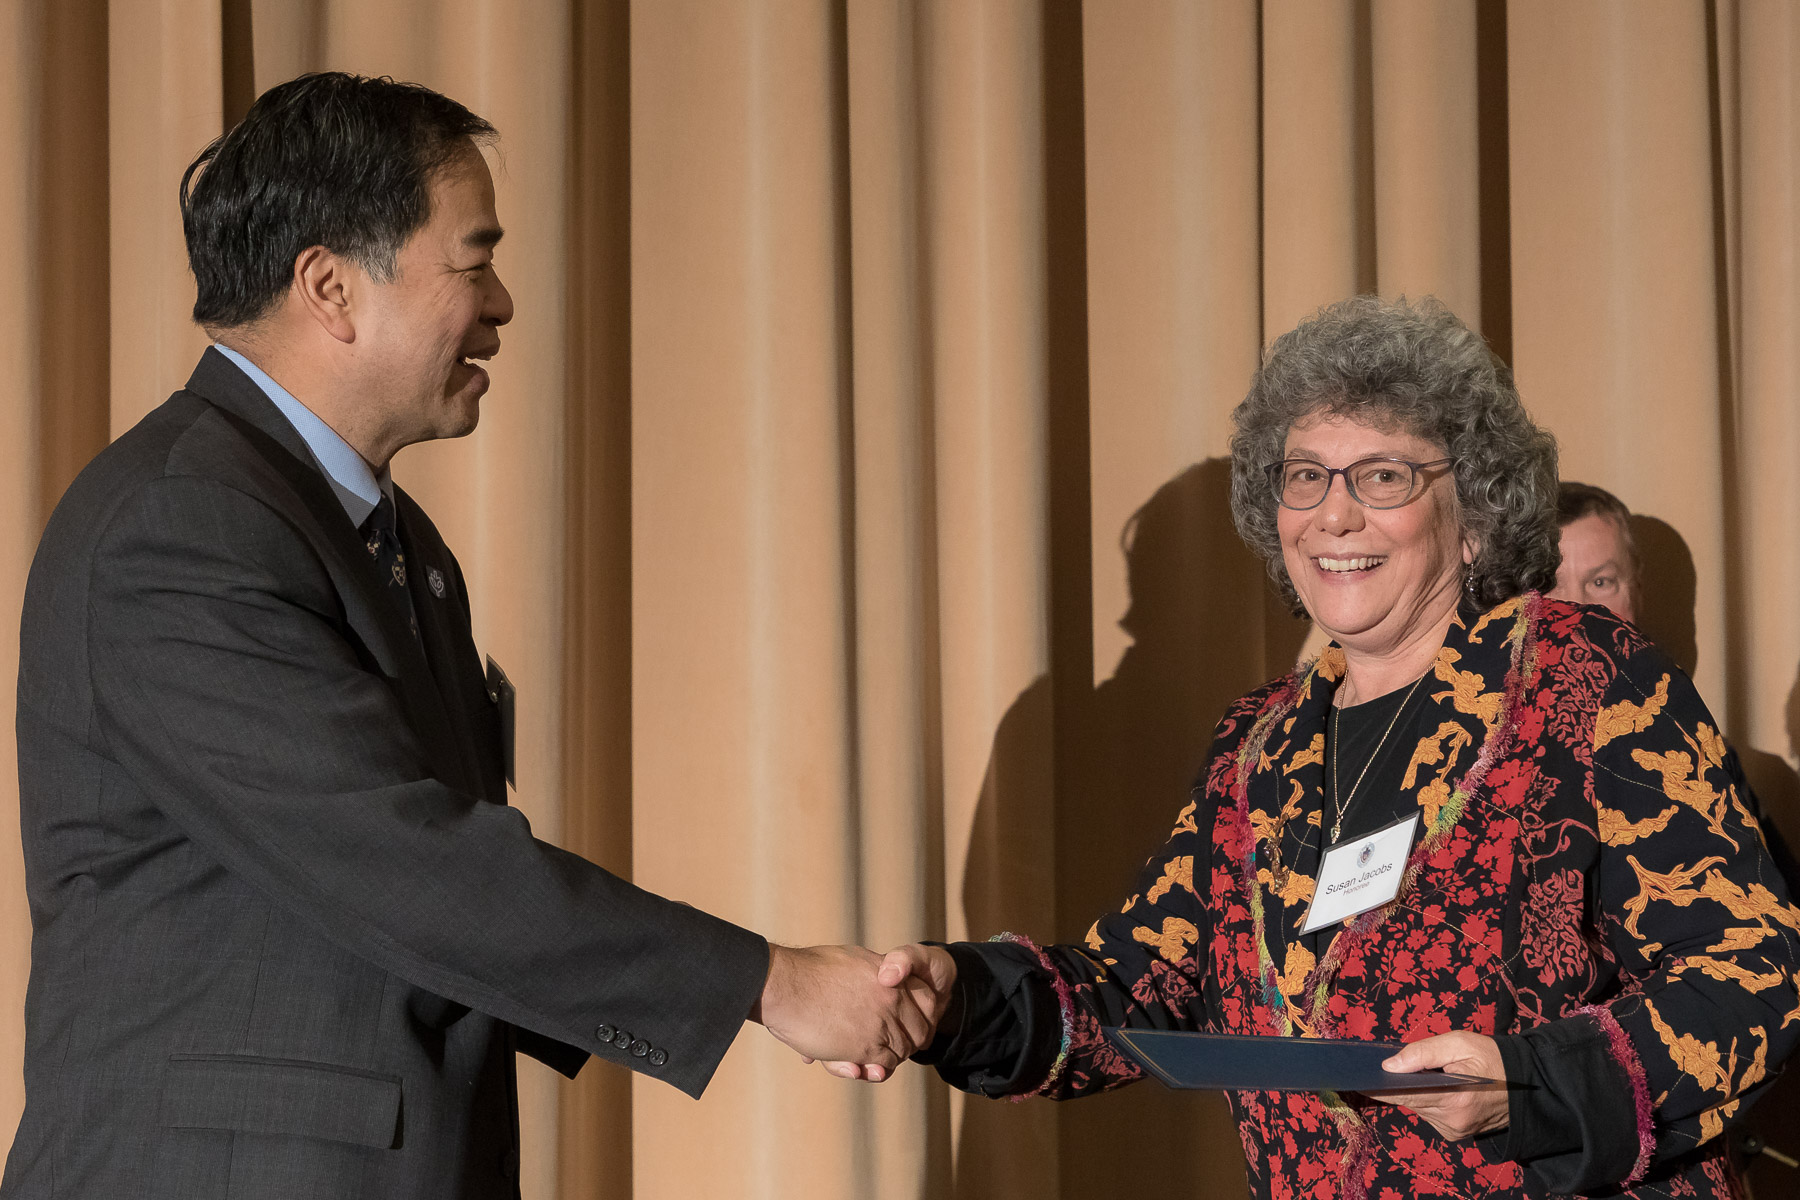 Susan Jacobs, right, with A. Gabriel Esteban, Ph.D., president, as faculty and staff members are inducted into DePaul University's 25 Year Club, Tuesday, Nov. 13, 2018, at the Lincoln Park Student Center. Employees celebrating their 25th work anniversary were honored at the luncheon with their colleagues and will have their names added to plaques located on the Loop and Lincoln Park Campuses. (DePaul University/Jeff Carrion)